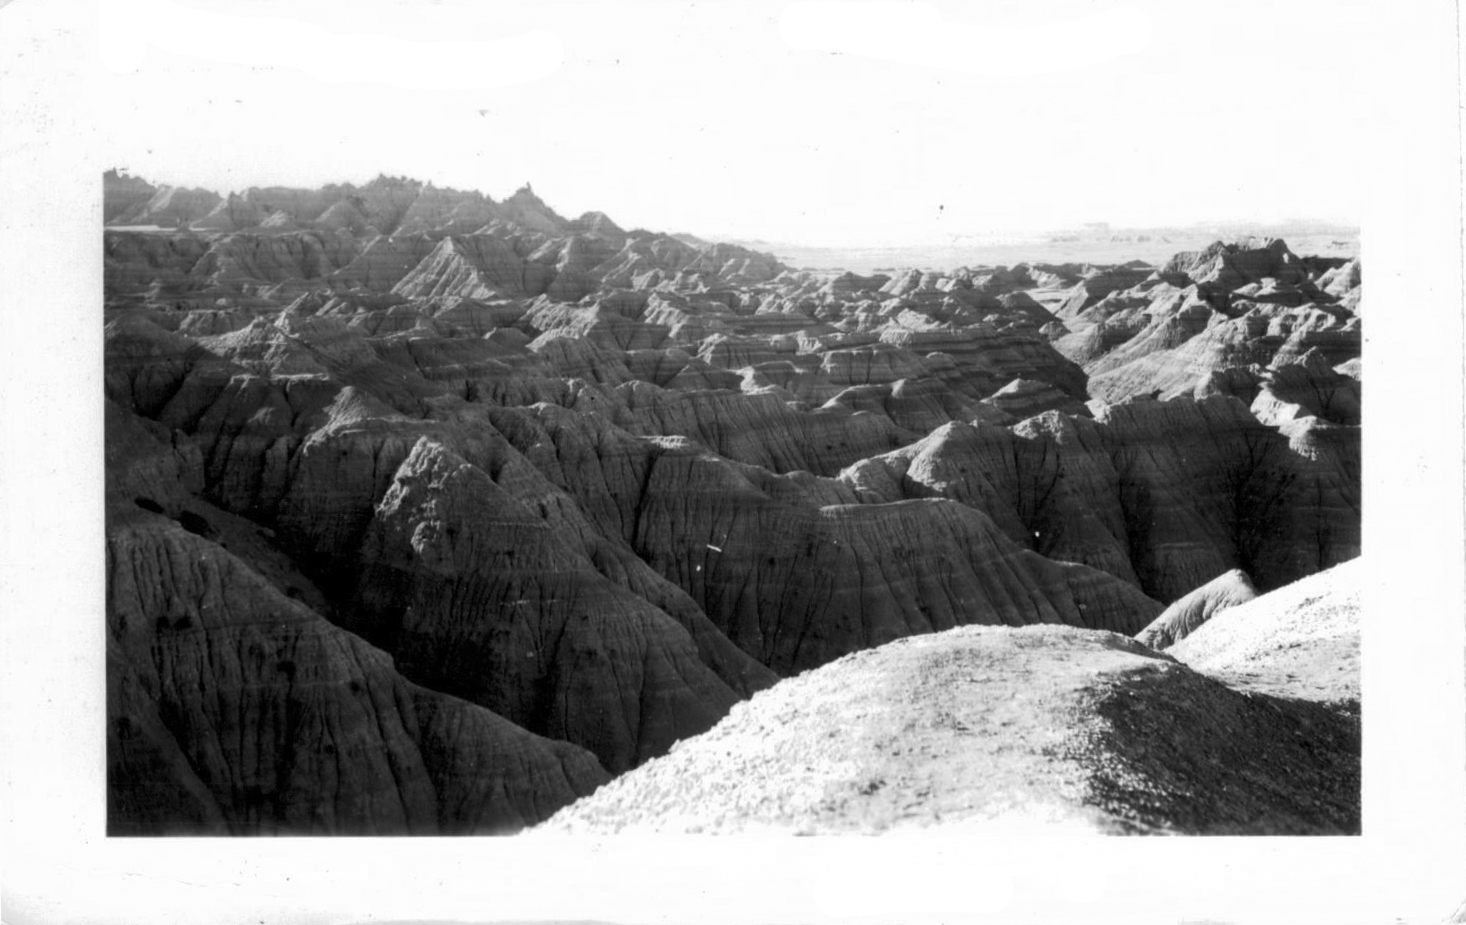 Badlands - Looking East about 7:30 AM.